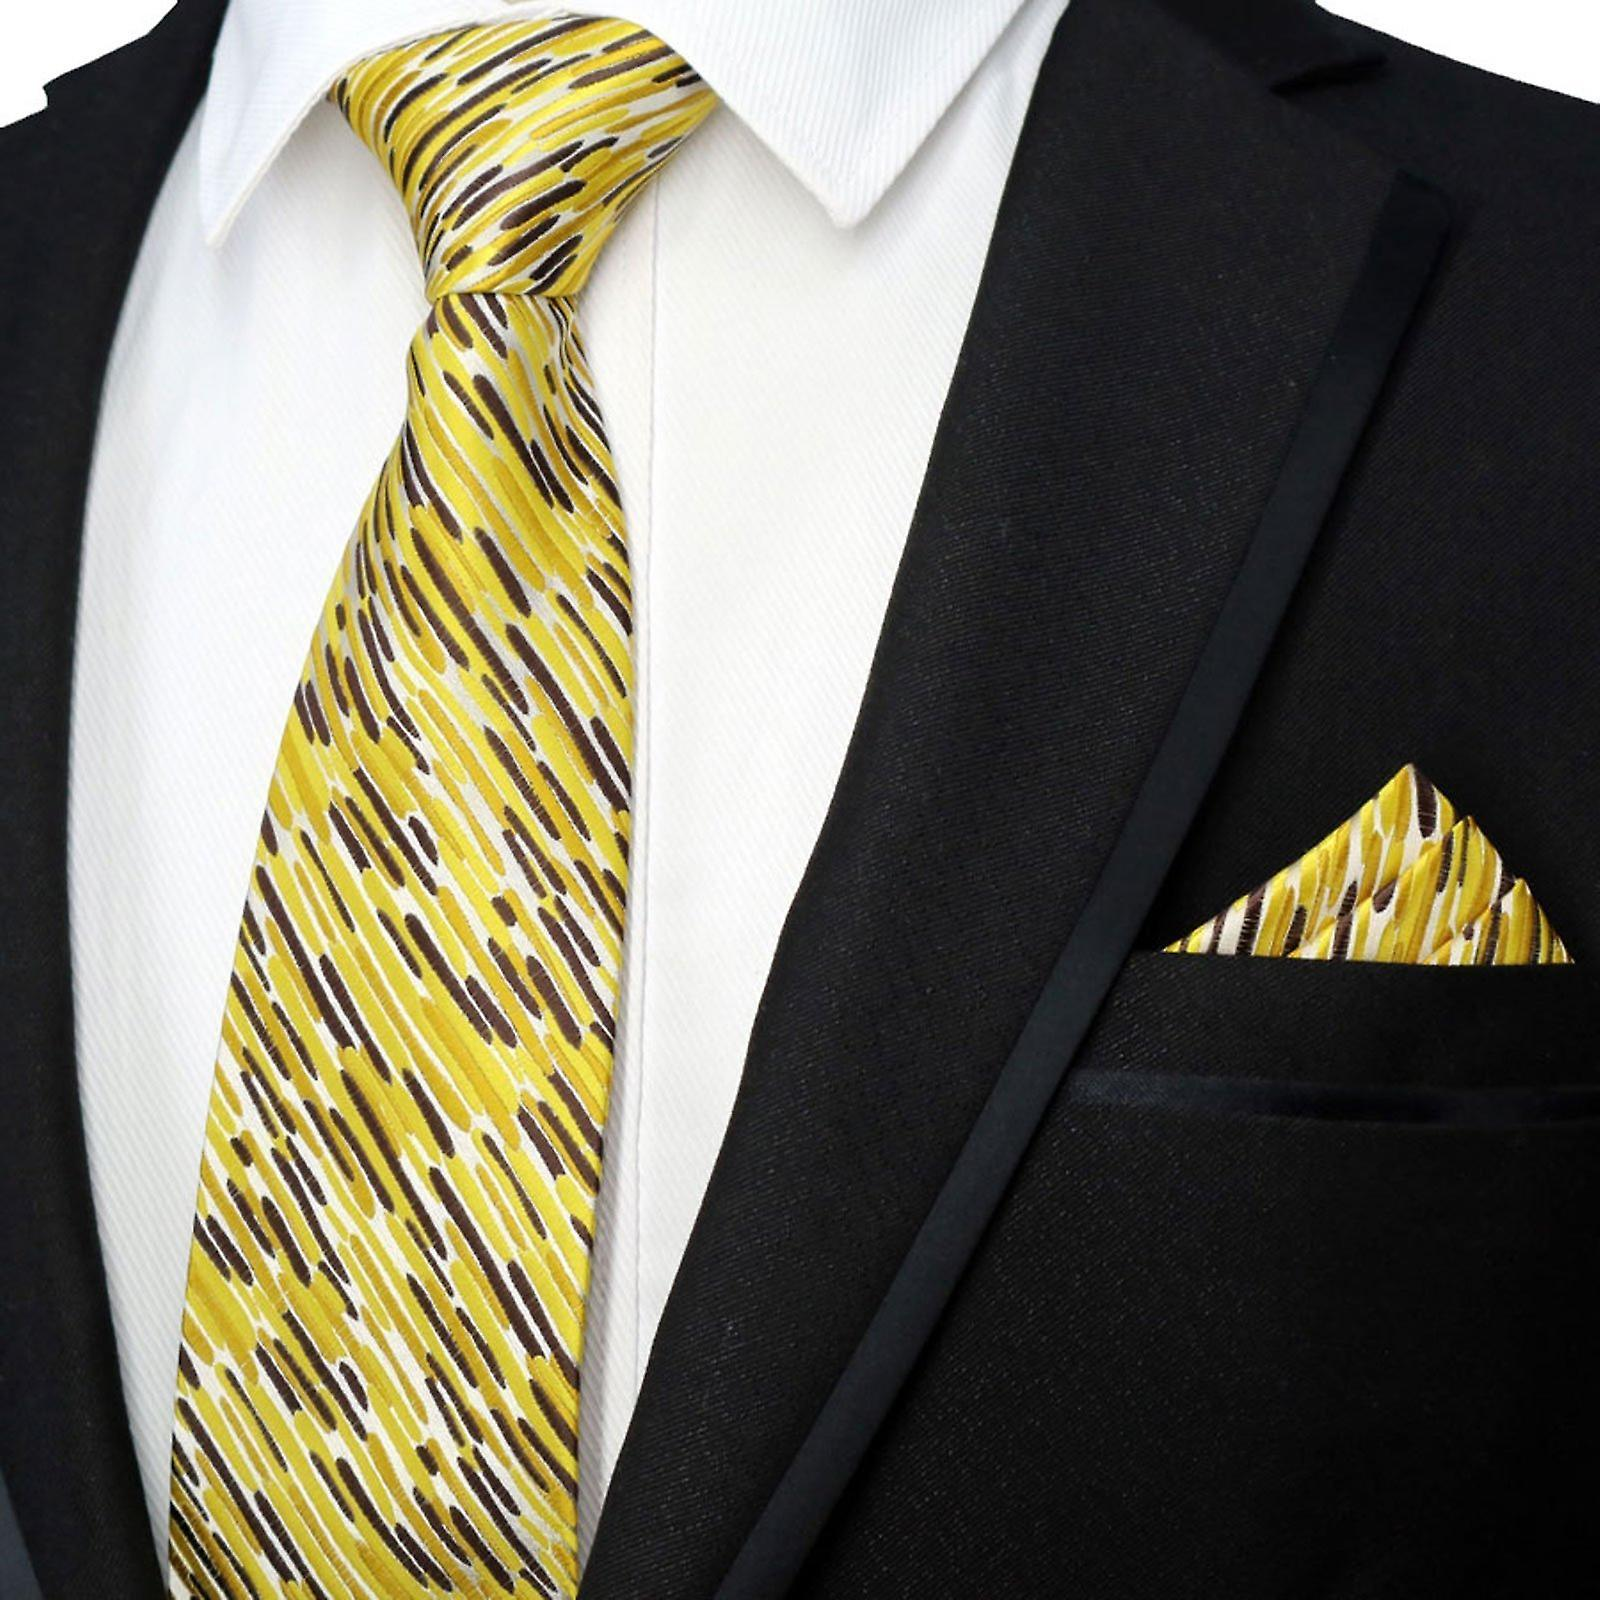 c0451930c5a8a Yellow & brown animal print necktie & pocket square set | Fruugo